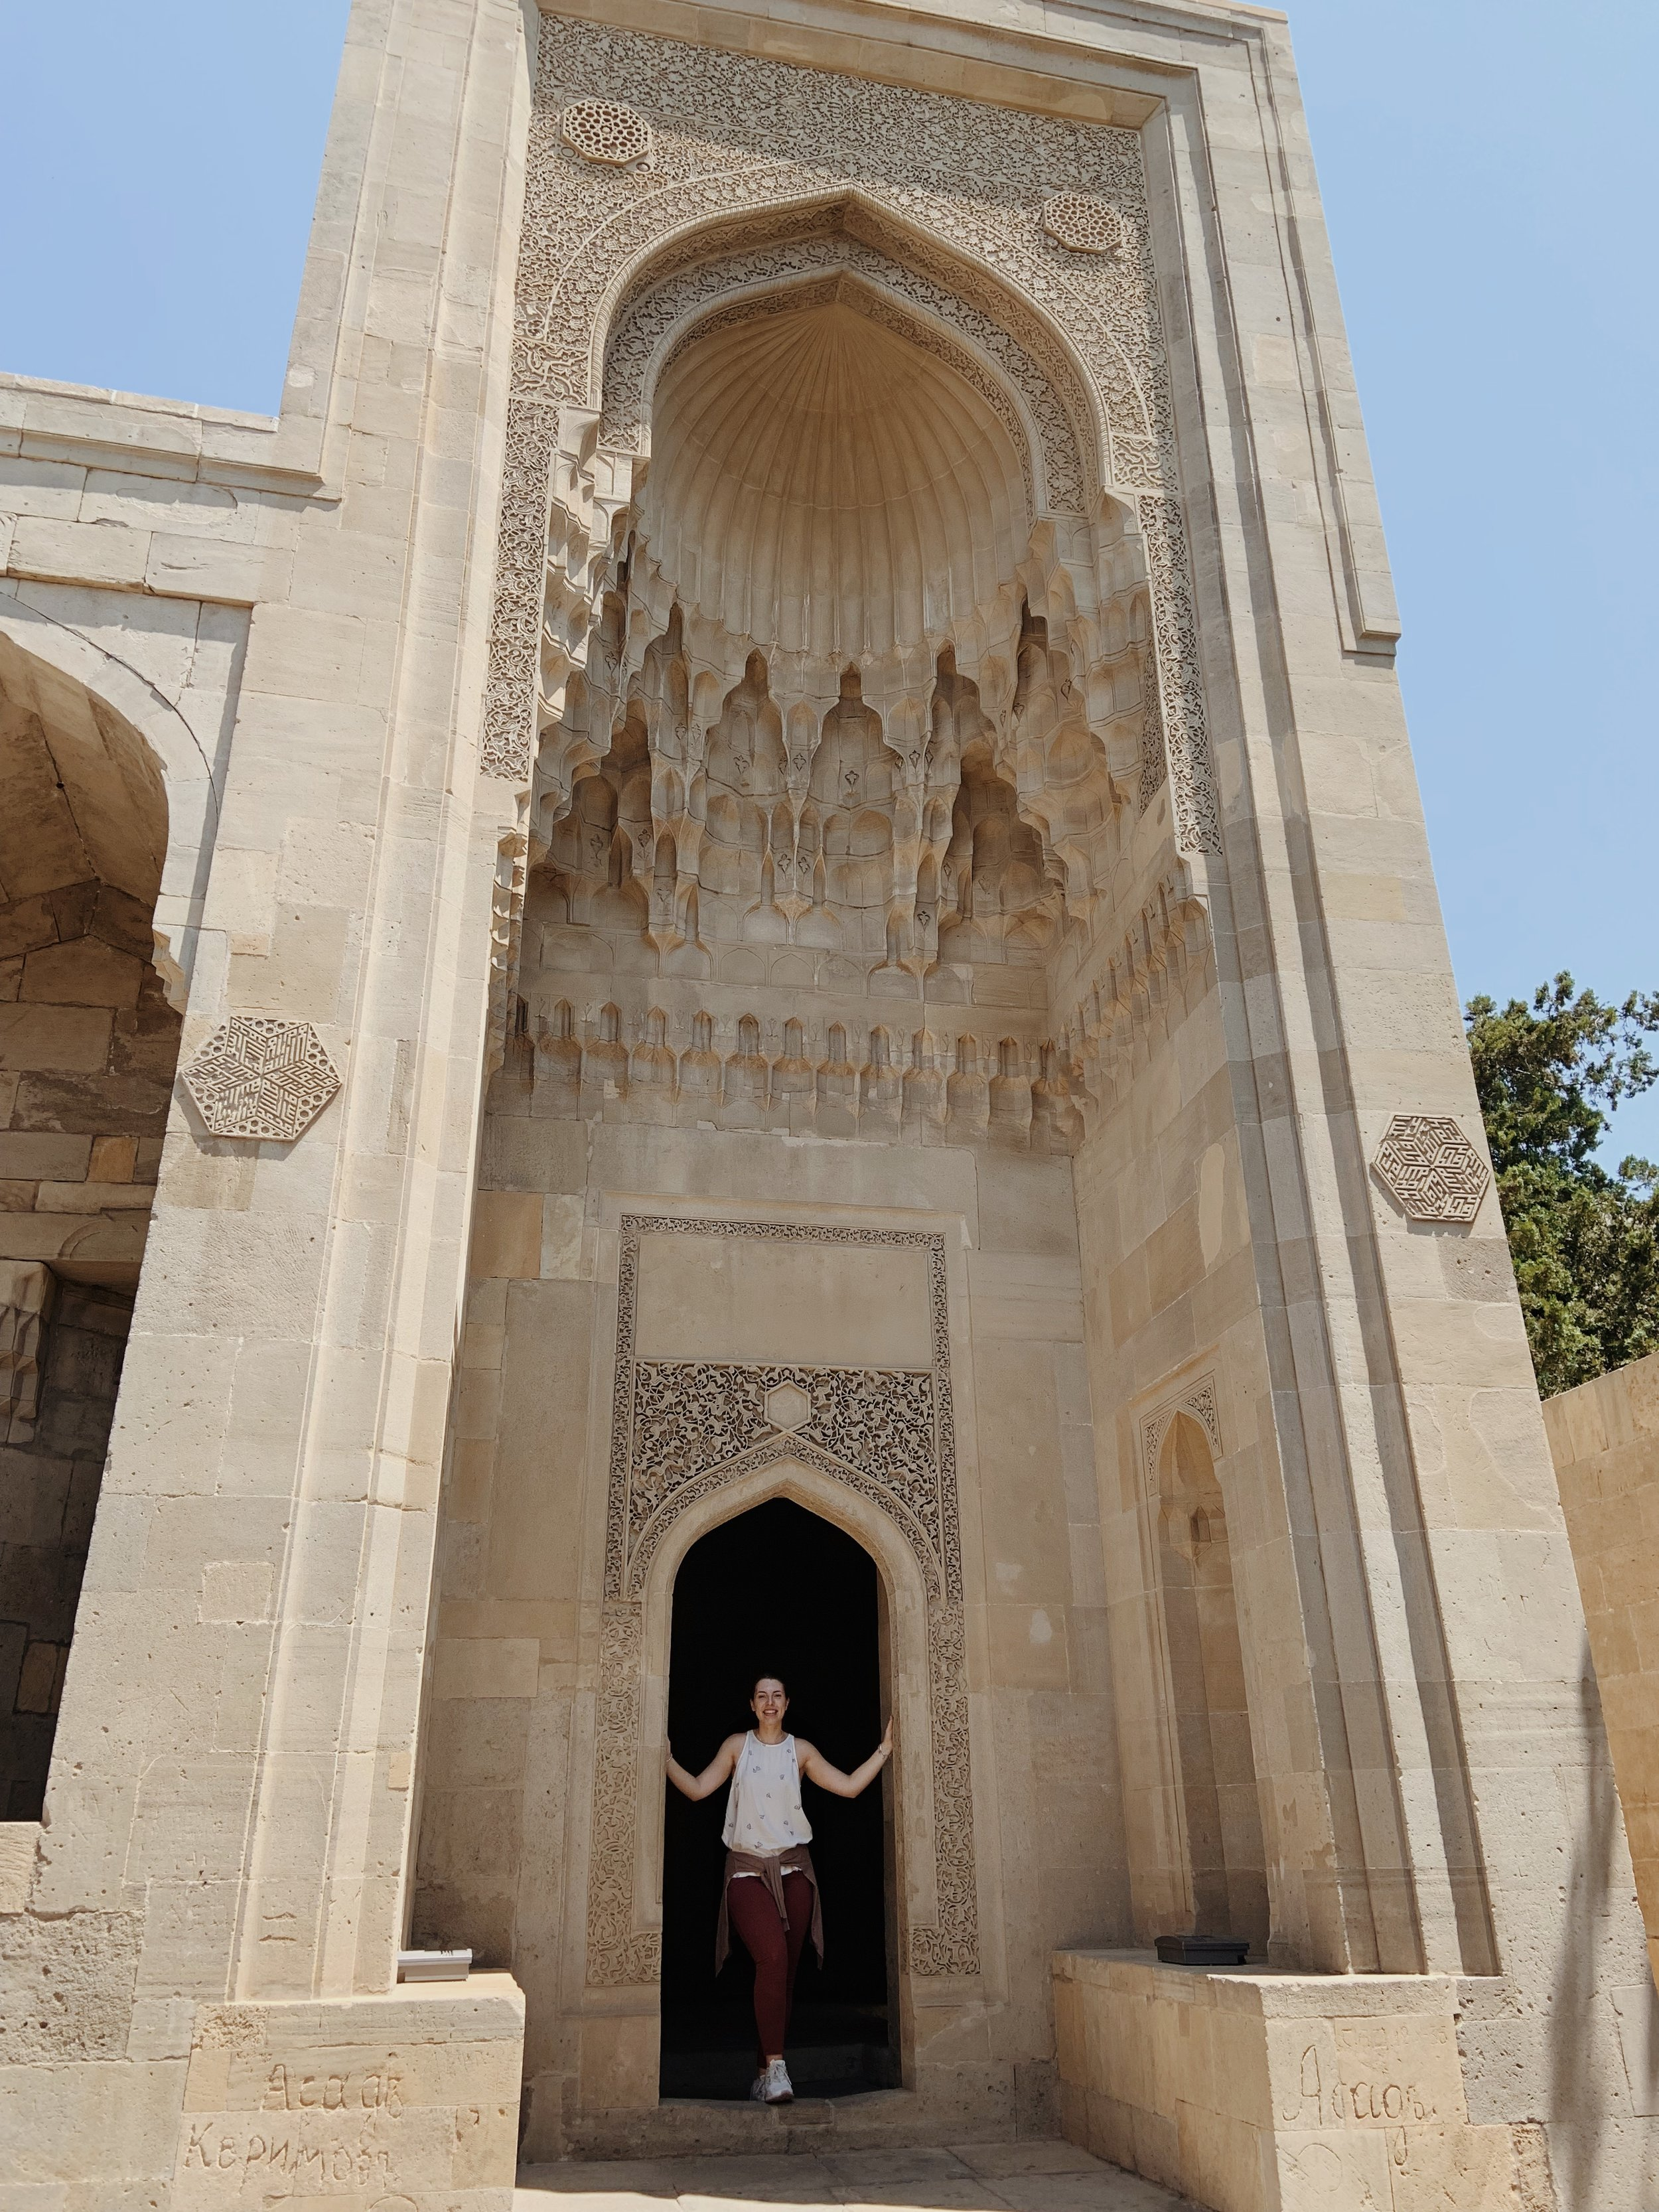 Standing at one of the gate's to the Palace entrance.